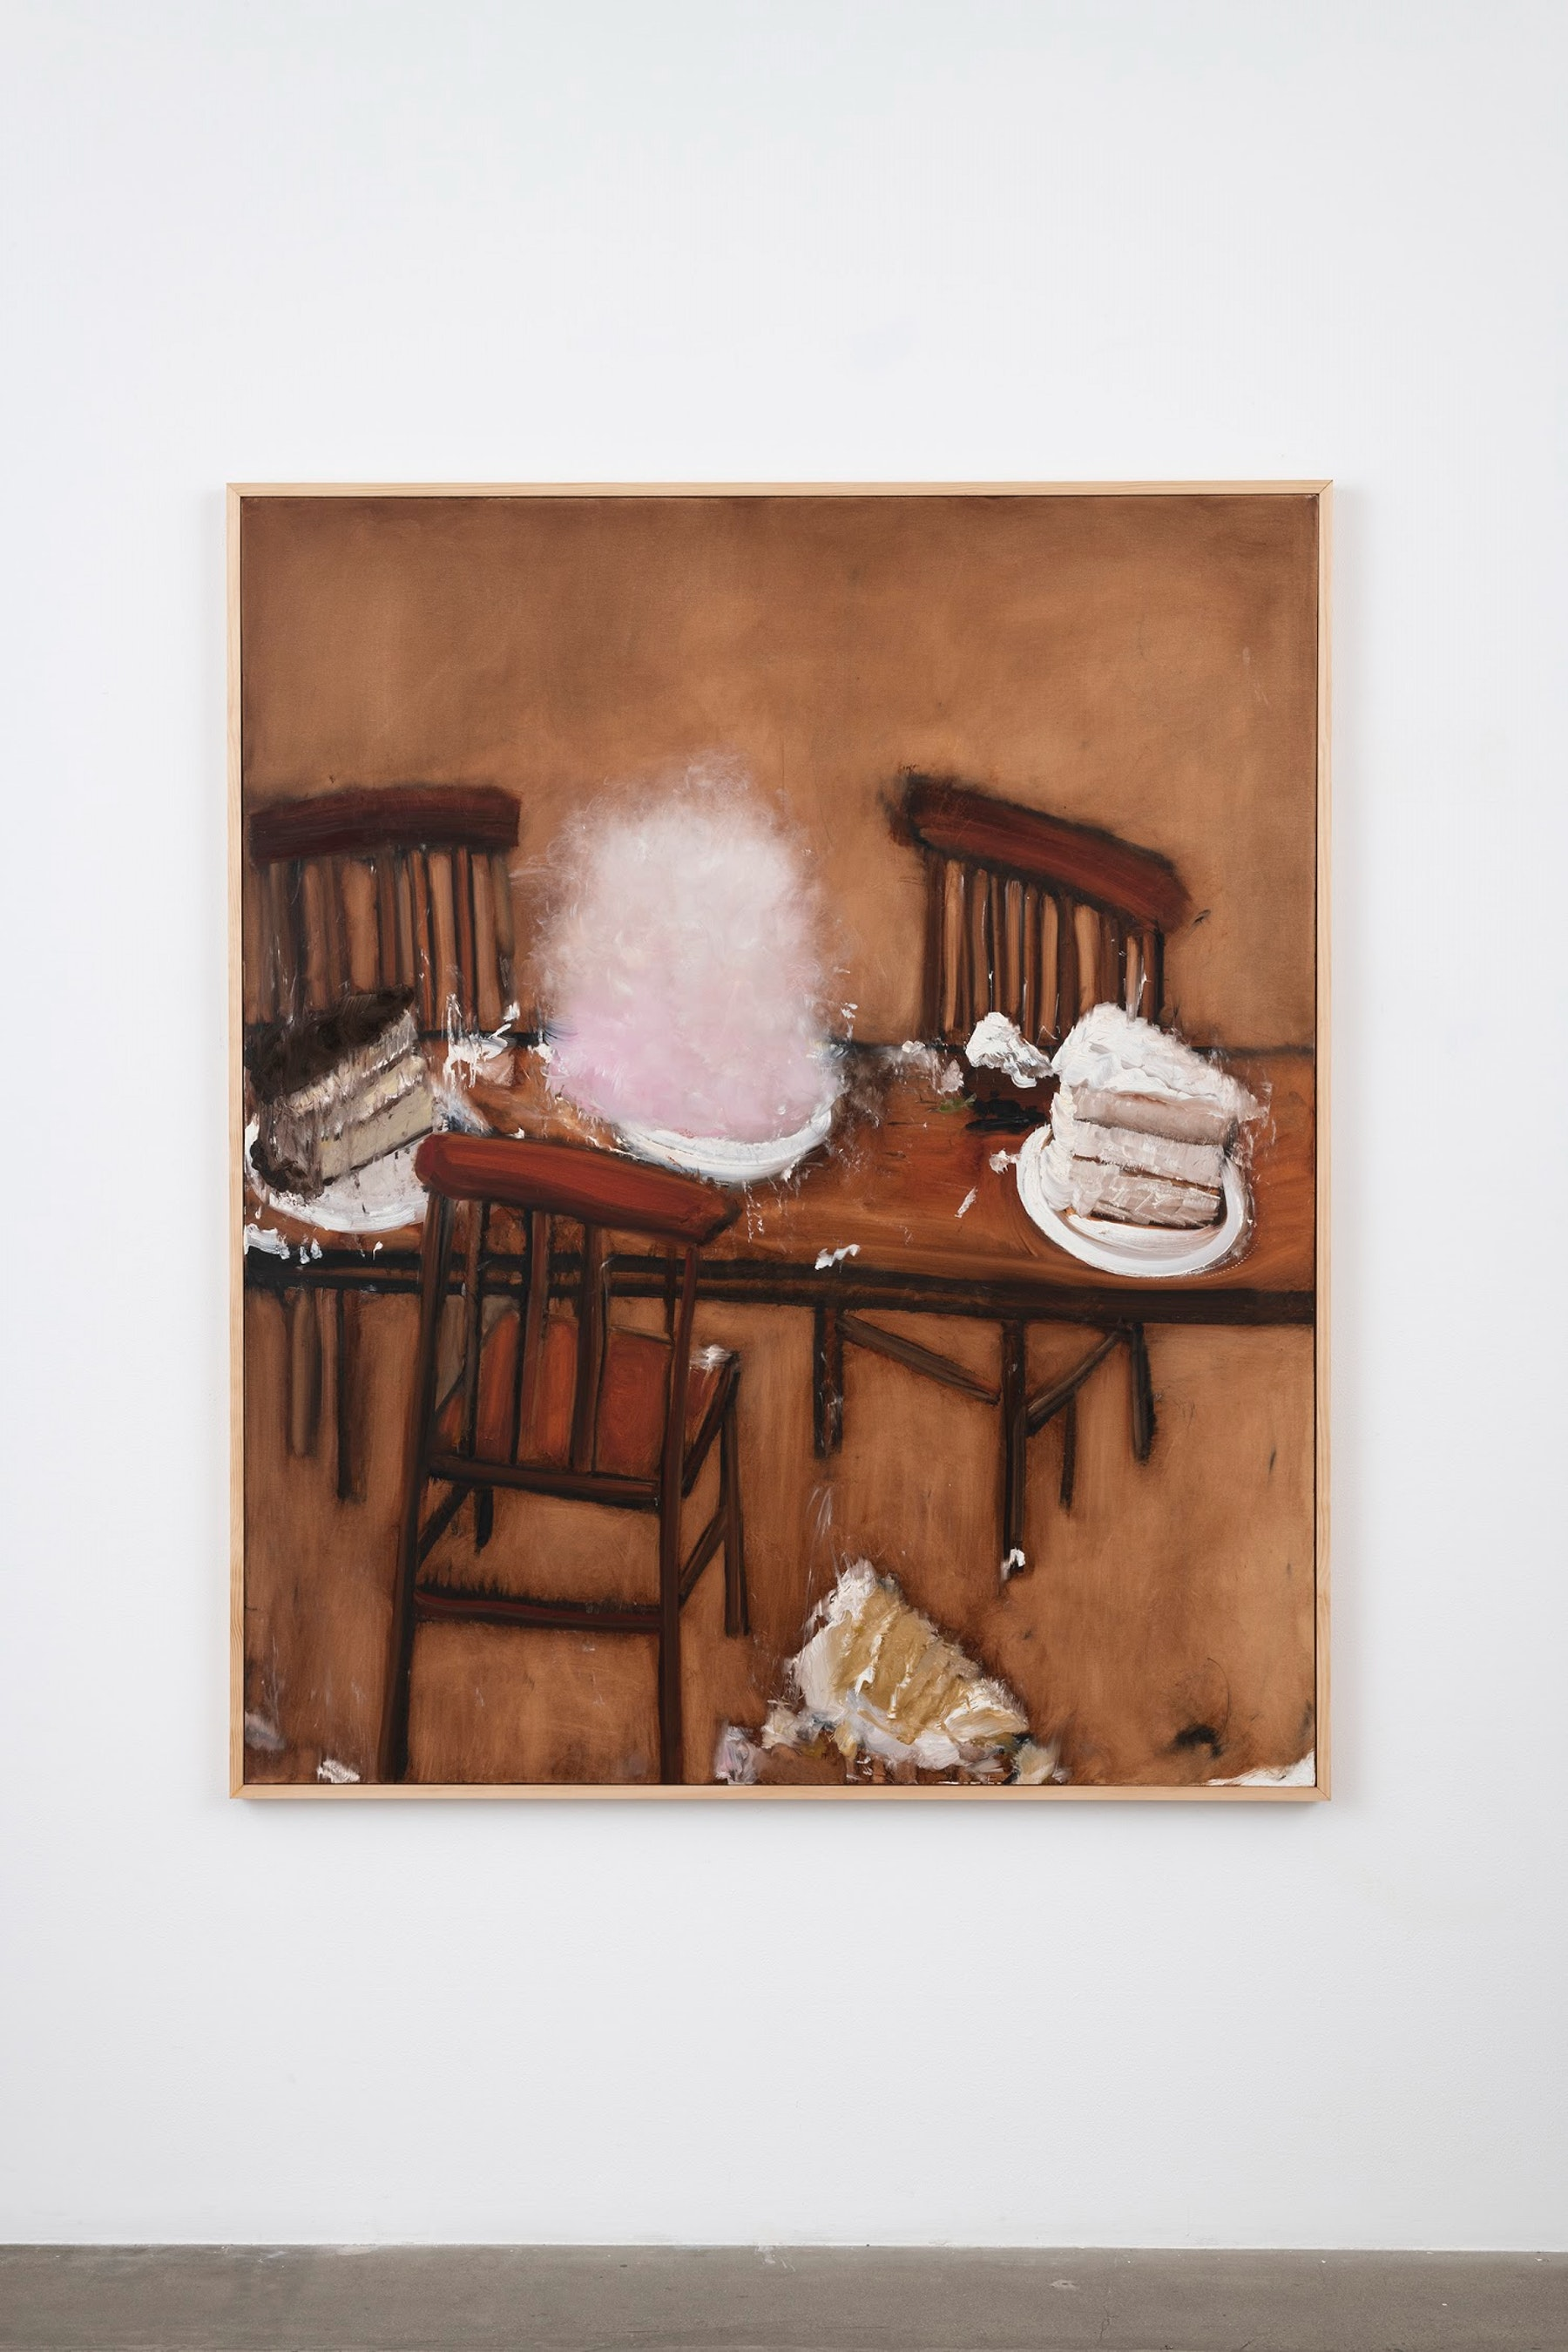 """Kim Dingle """"Cotton Candy,"""" 2007 Oil on canvas 73.5 x 61.5 x 1.5"""" [HxWxD] (186.69 x 156.21 x 3.81 cm) Inventory #DIN256 Courtesy of the artist and Vielmetter Los Angeles Photo credit: Jeff McLane"""